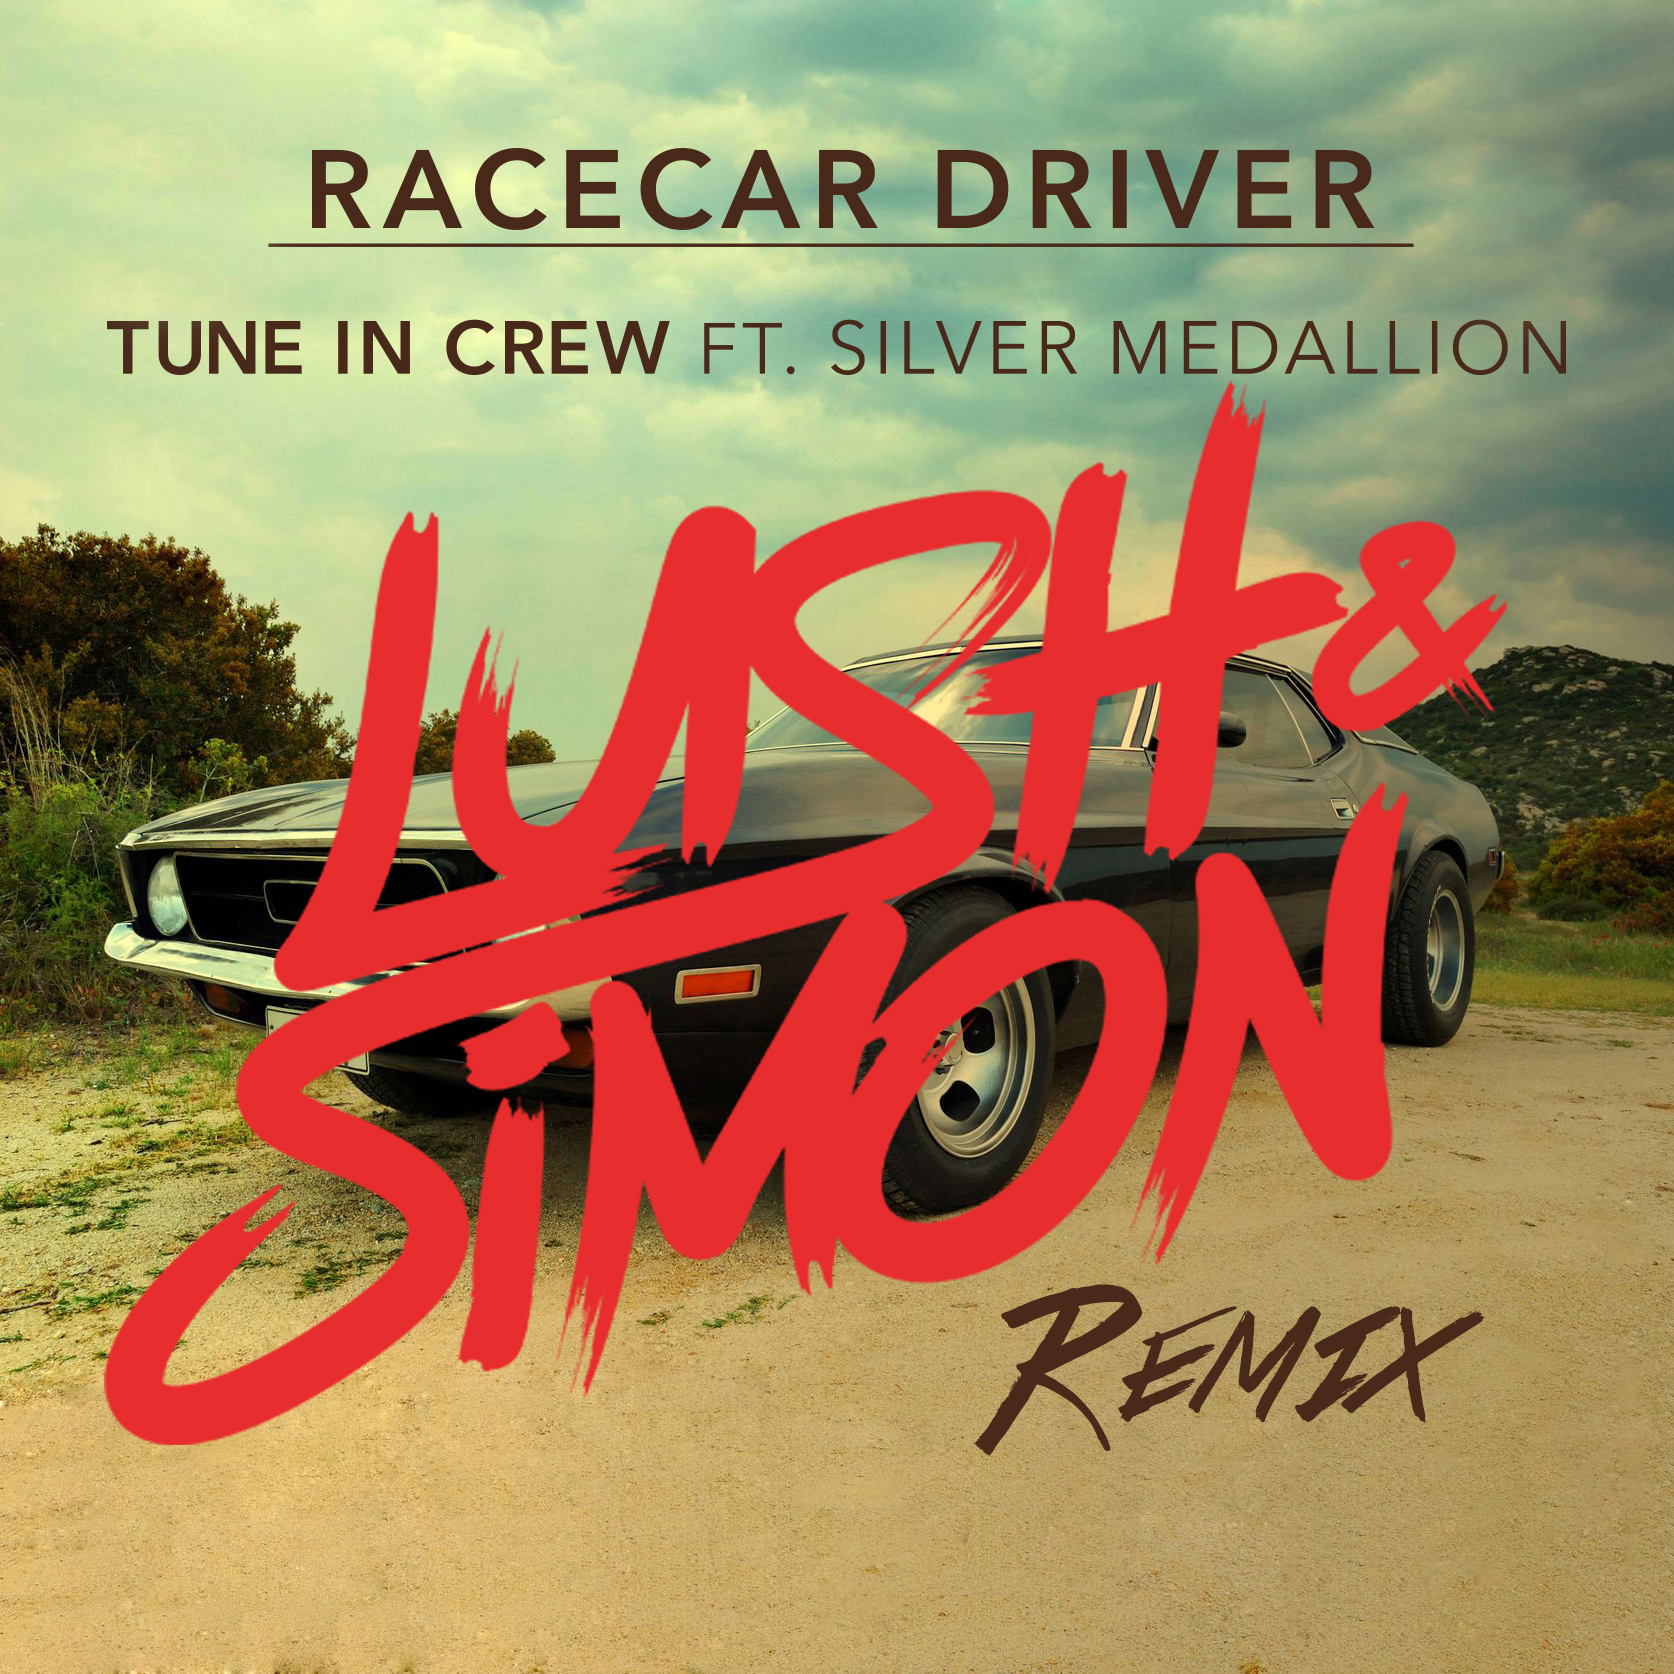 "Tune In Crew ft Silver Medallion ""Racecar Driver"" (Lush & Simon Remix) on EDMTunes.com"